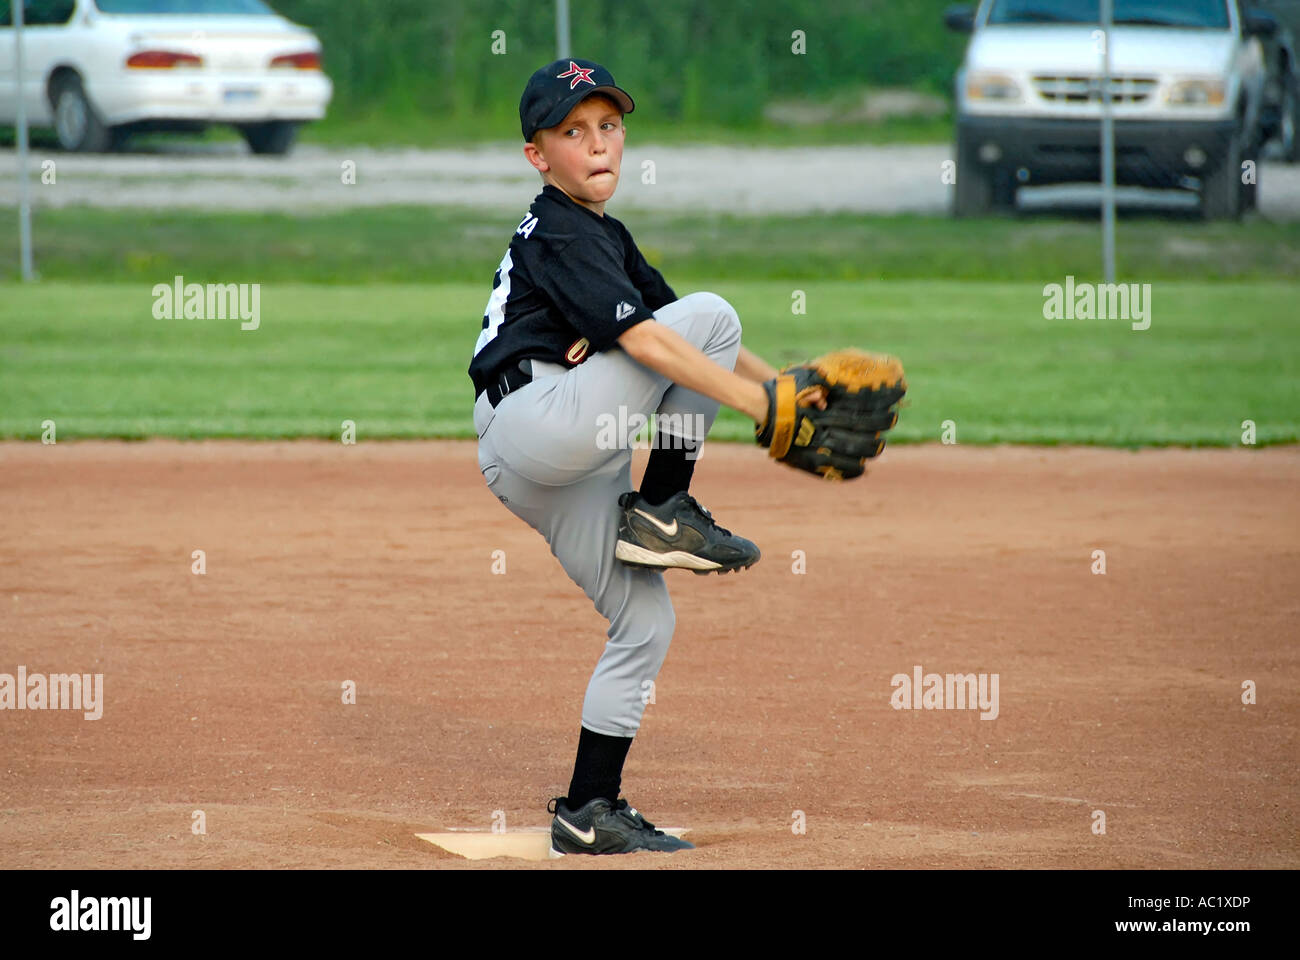 La petite ligue de baseball pitcher lanceur de baseball. Photo Stock